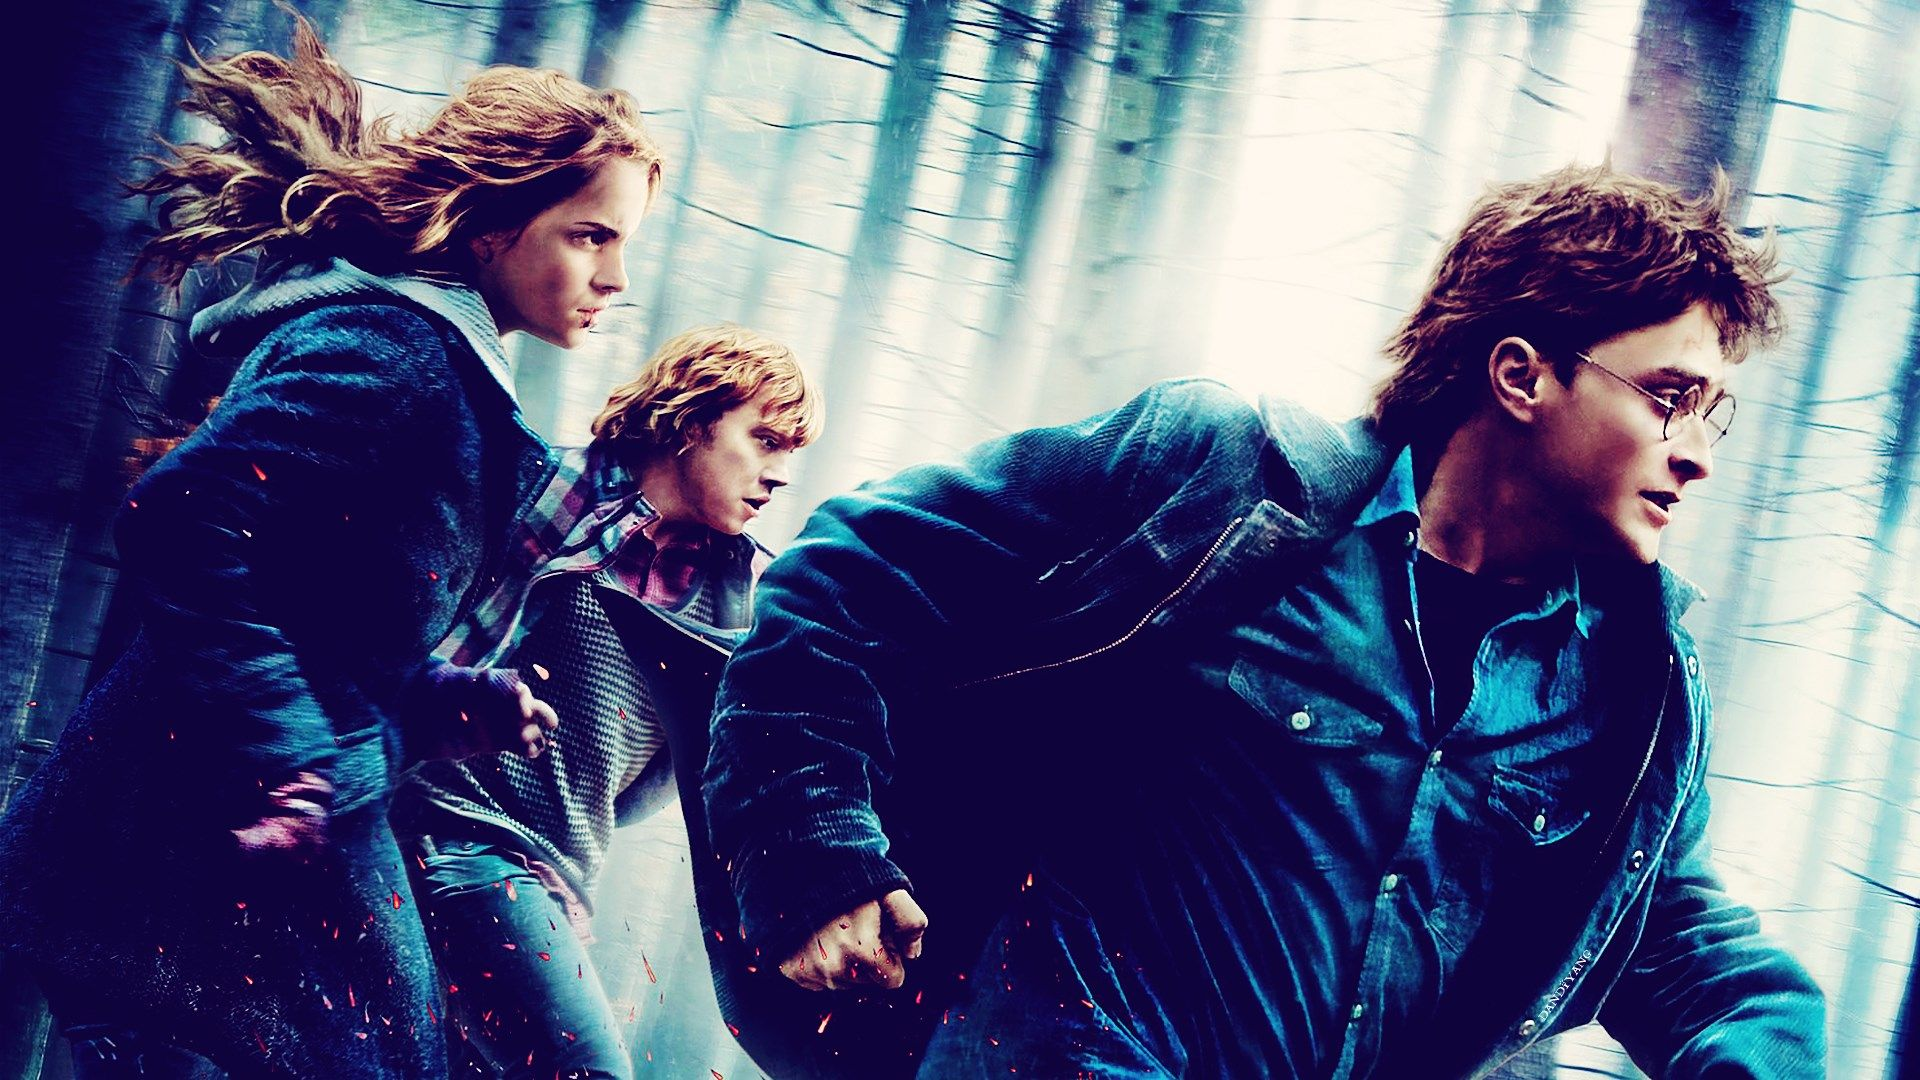 1920x1080 Widescreen Wallpaper Harry Potter And The Deathly